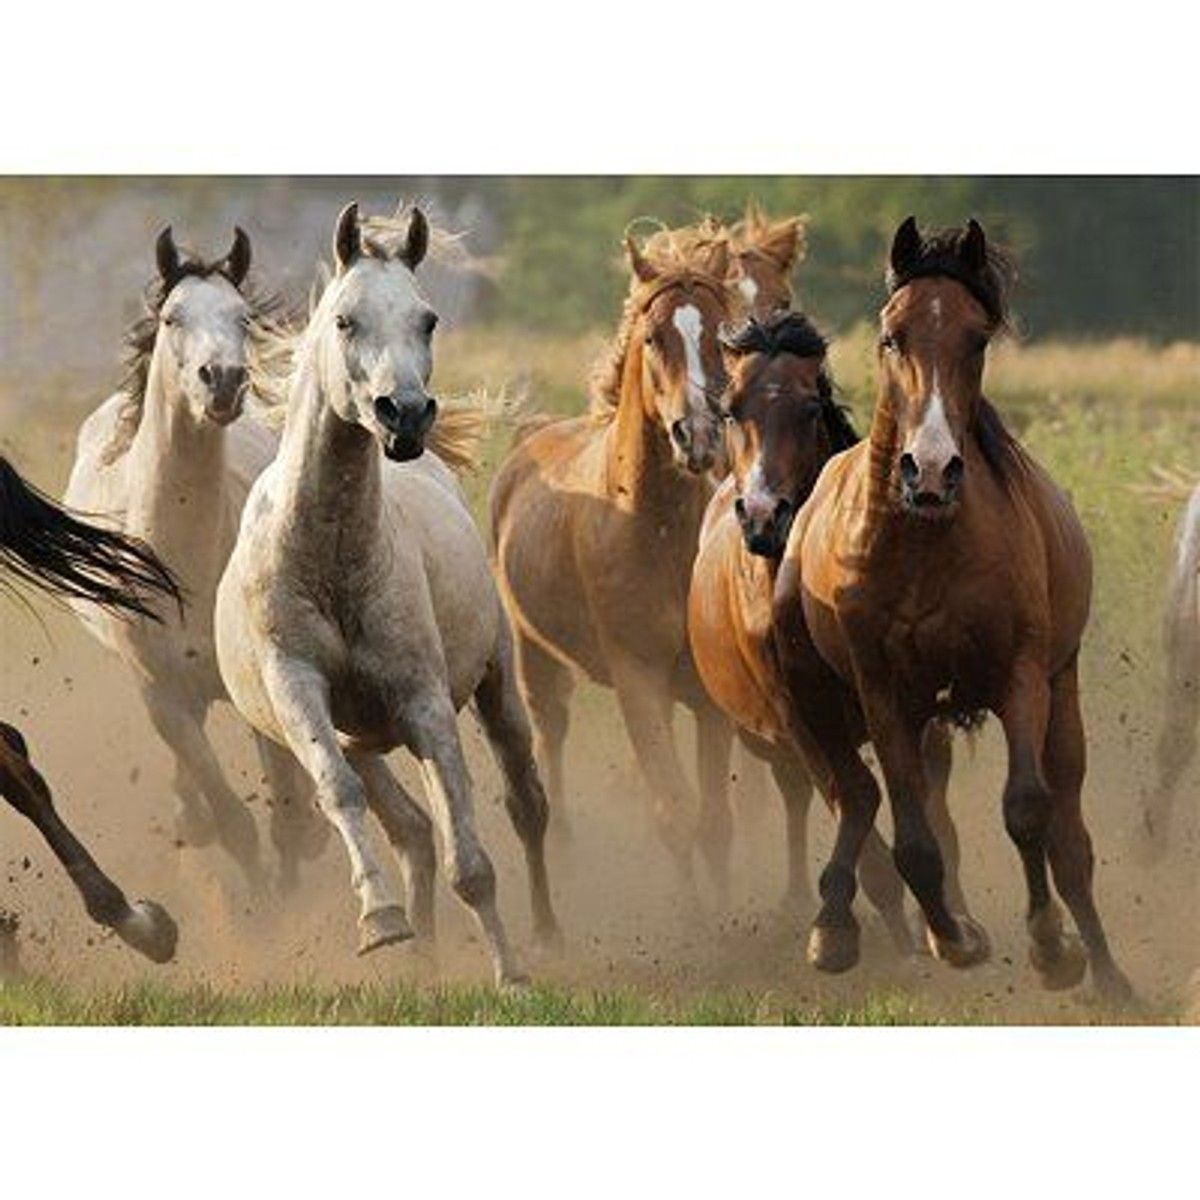 Horde De Chevaux Sauvages Rav87561 Taille Taille Unique Chevaux Sauvages Beaux Chevaux Animaux